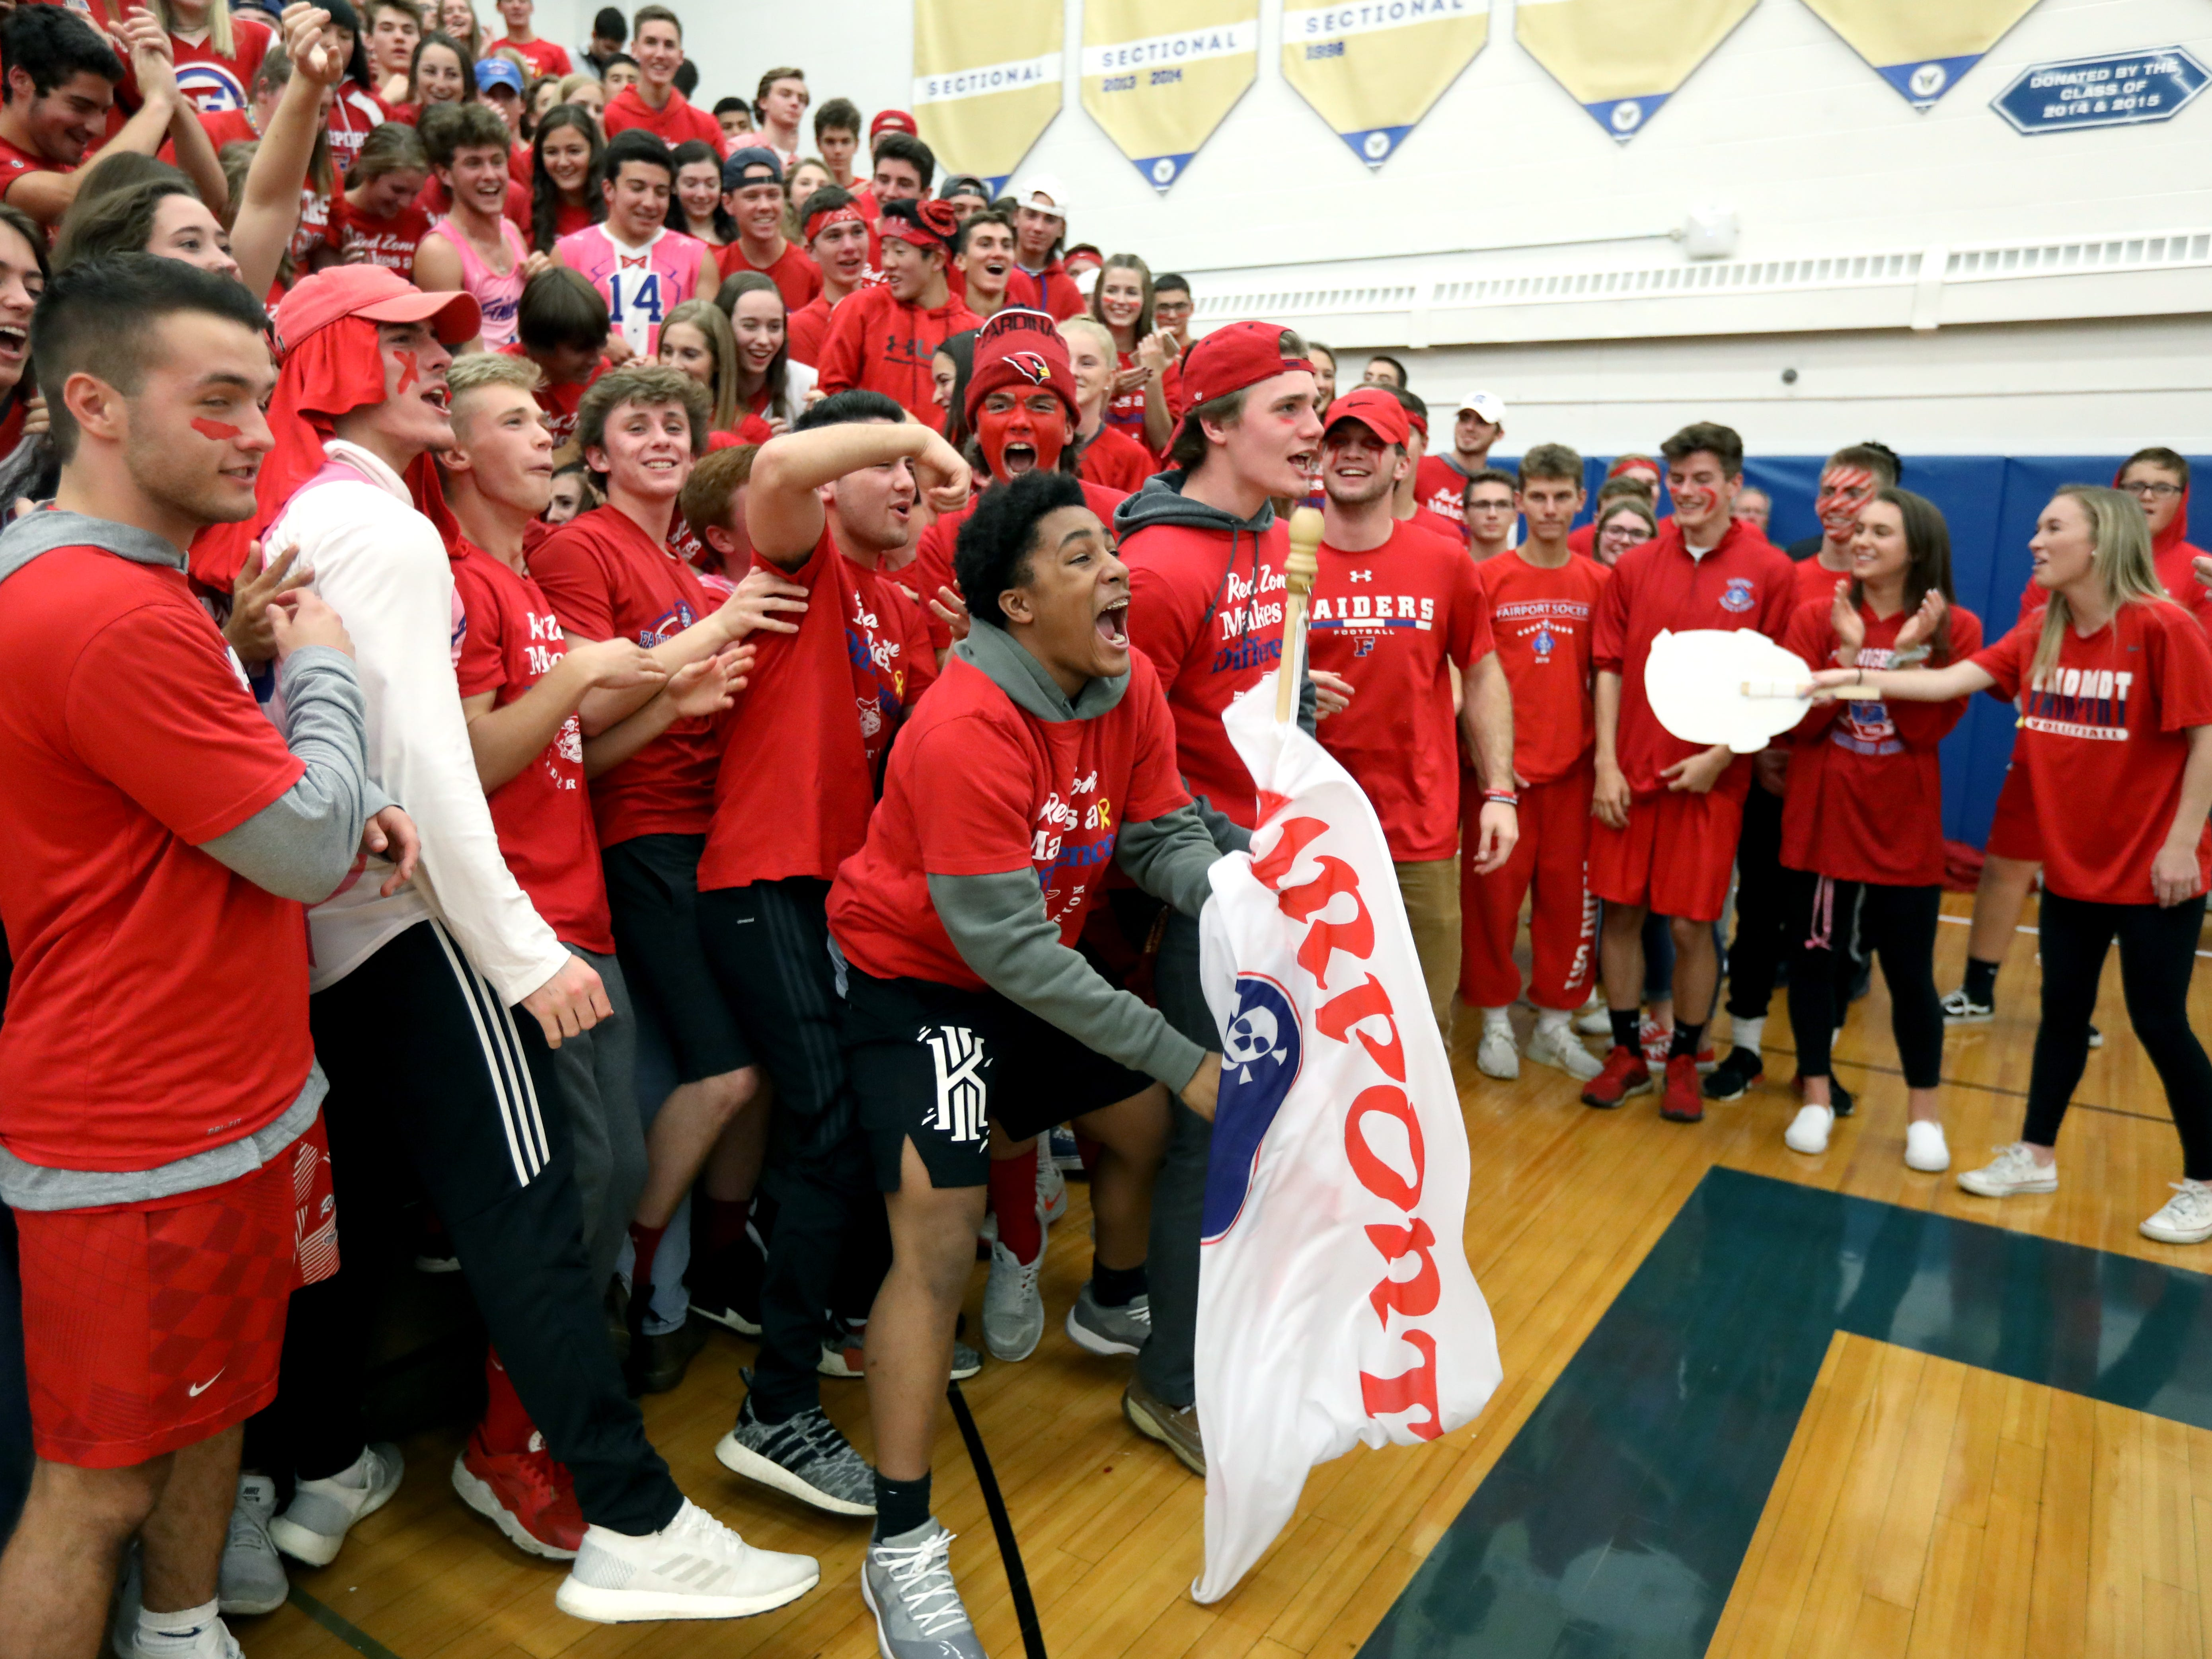 Class A volleyball final: Fairport fans cheer as they lead McQuaid in the first set at Webster Schroeder High School.